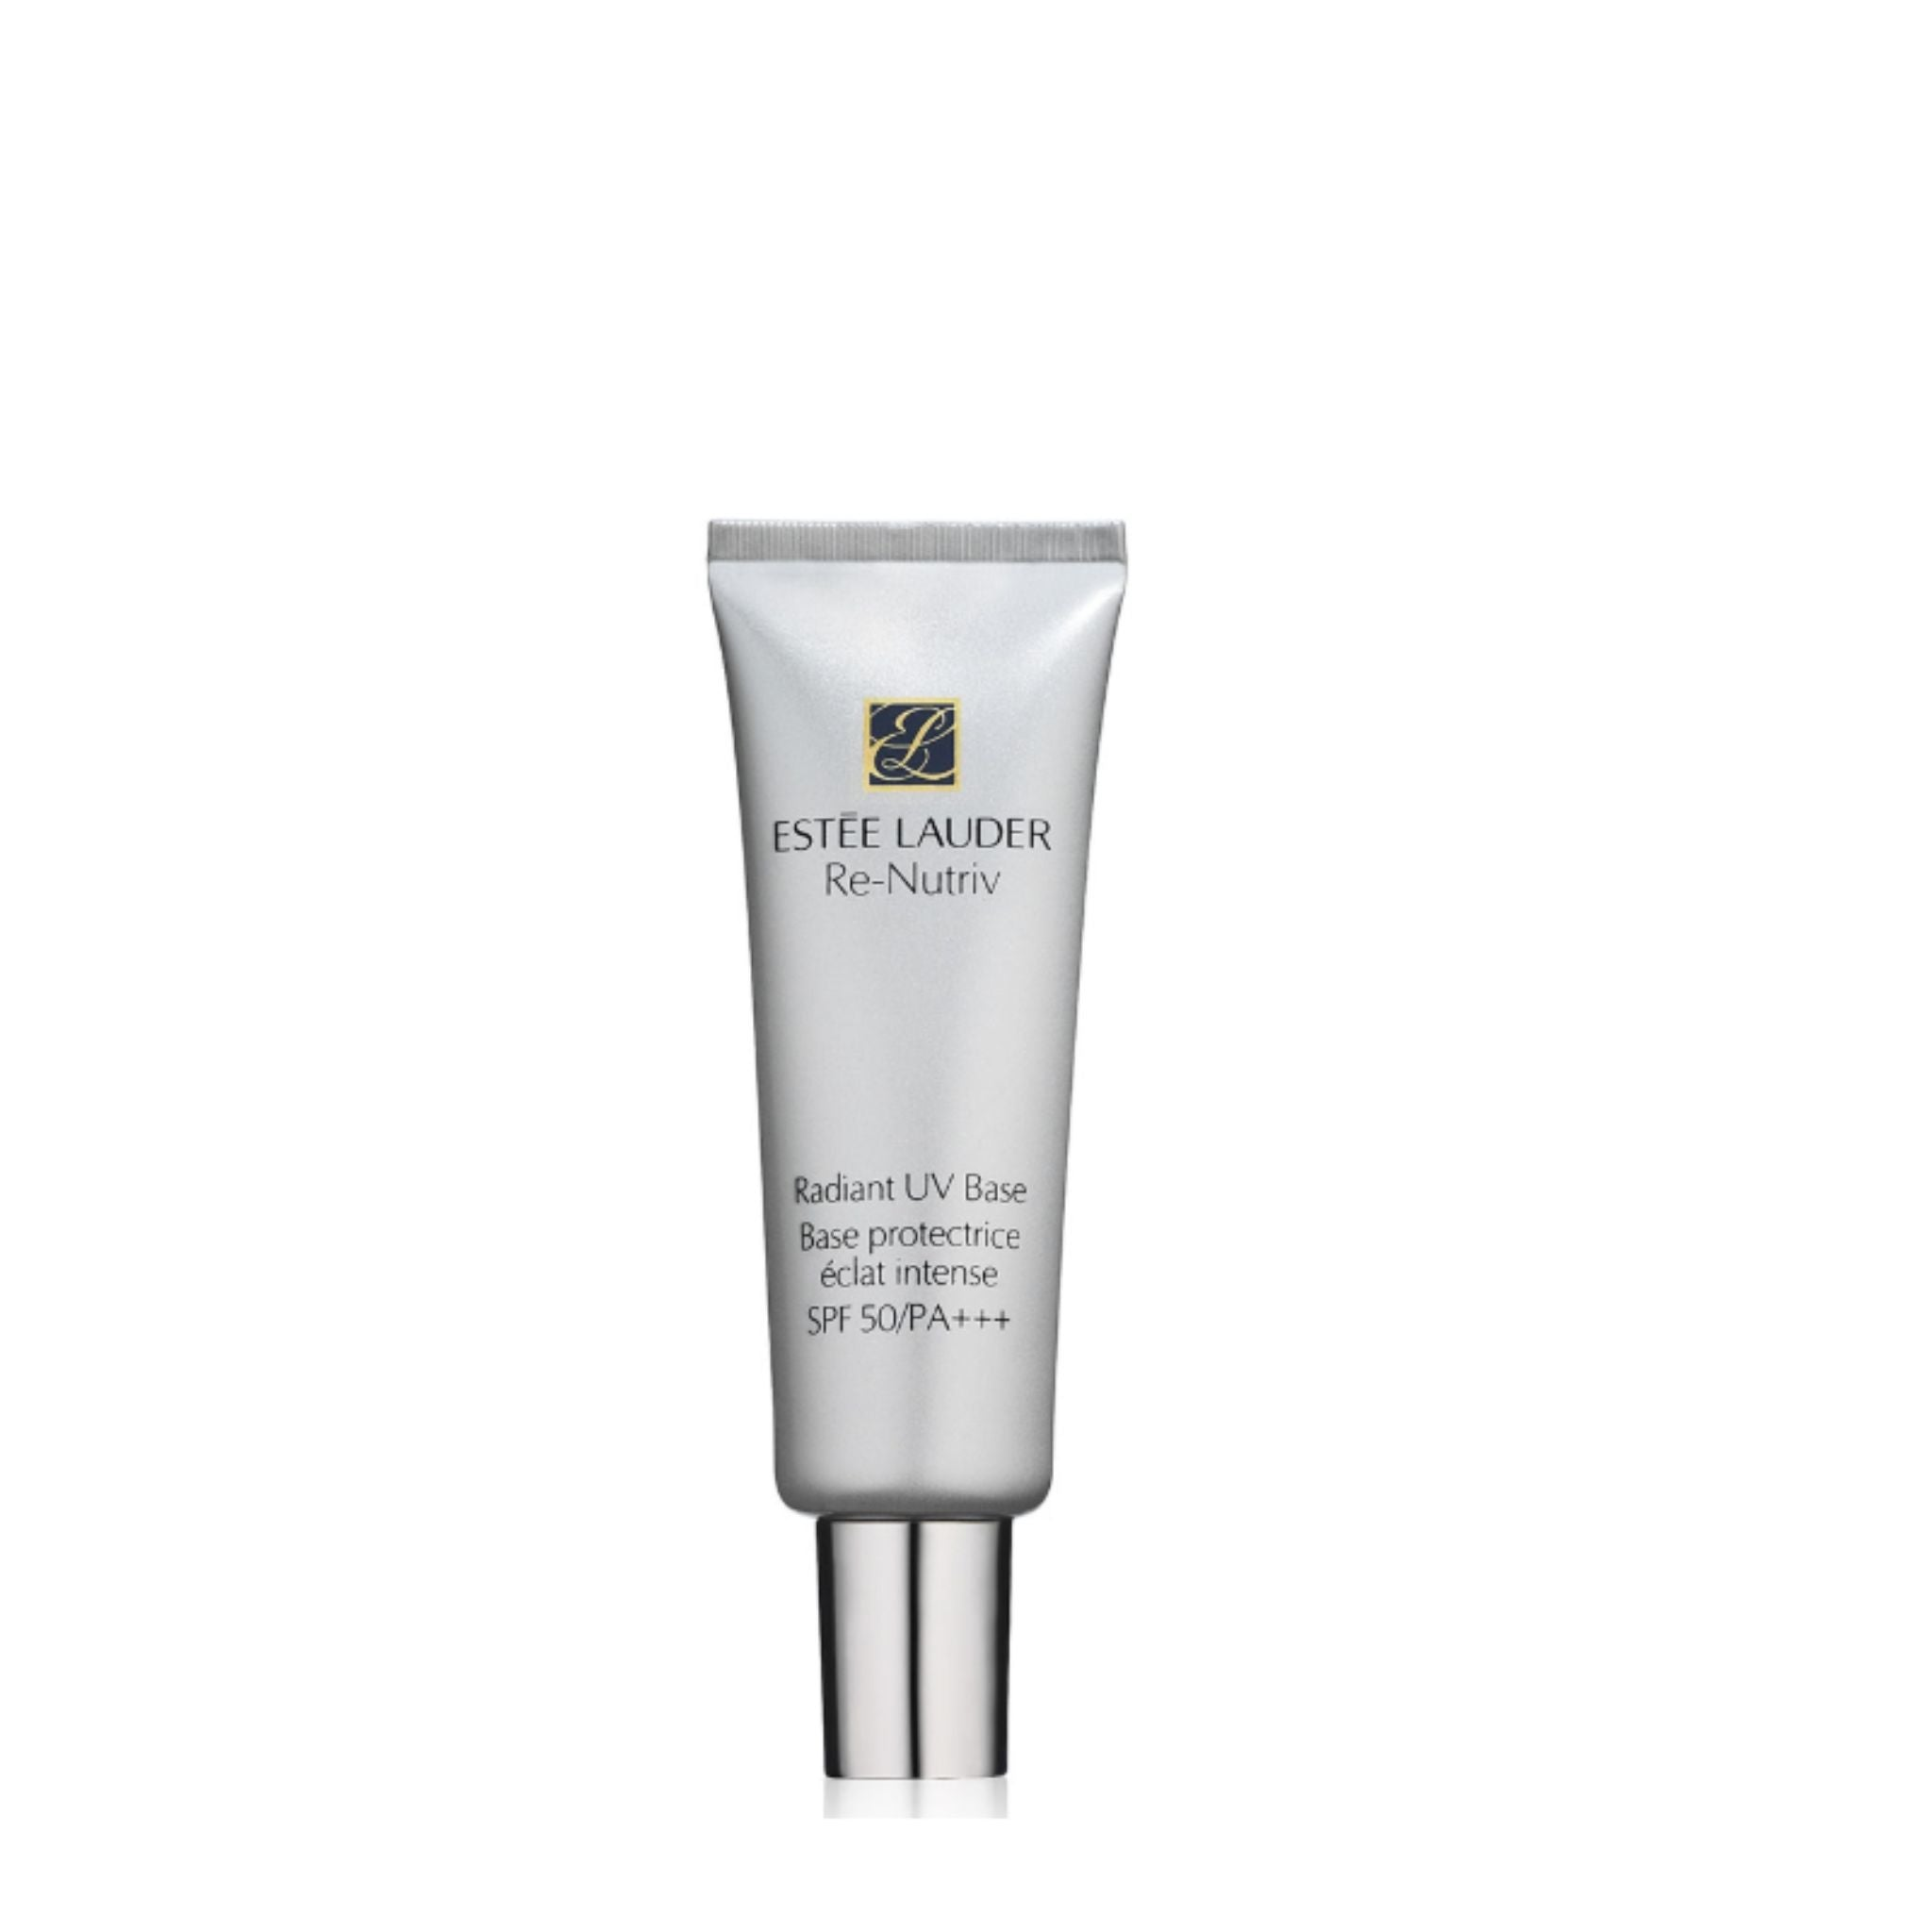 Estée Lauder Re-Nutriv Radiant UV Base SPF 50/PA+++ 30ml